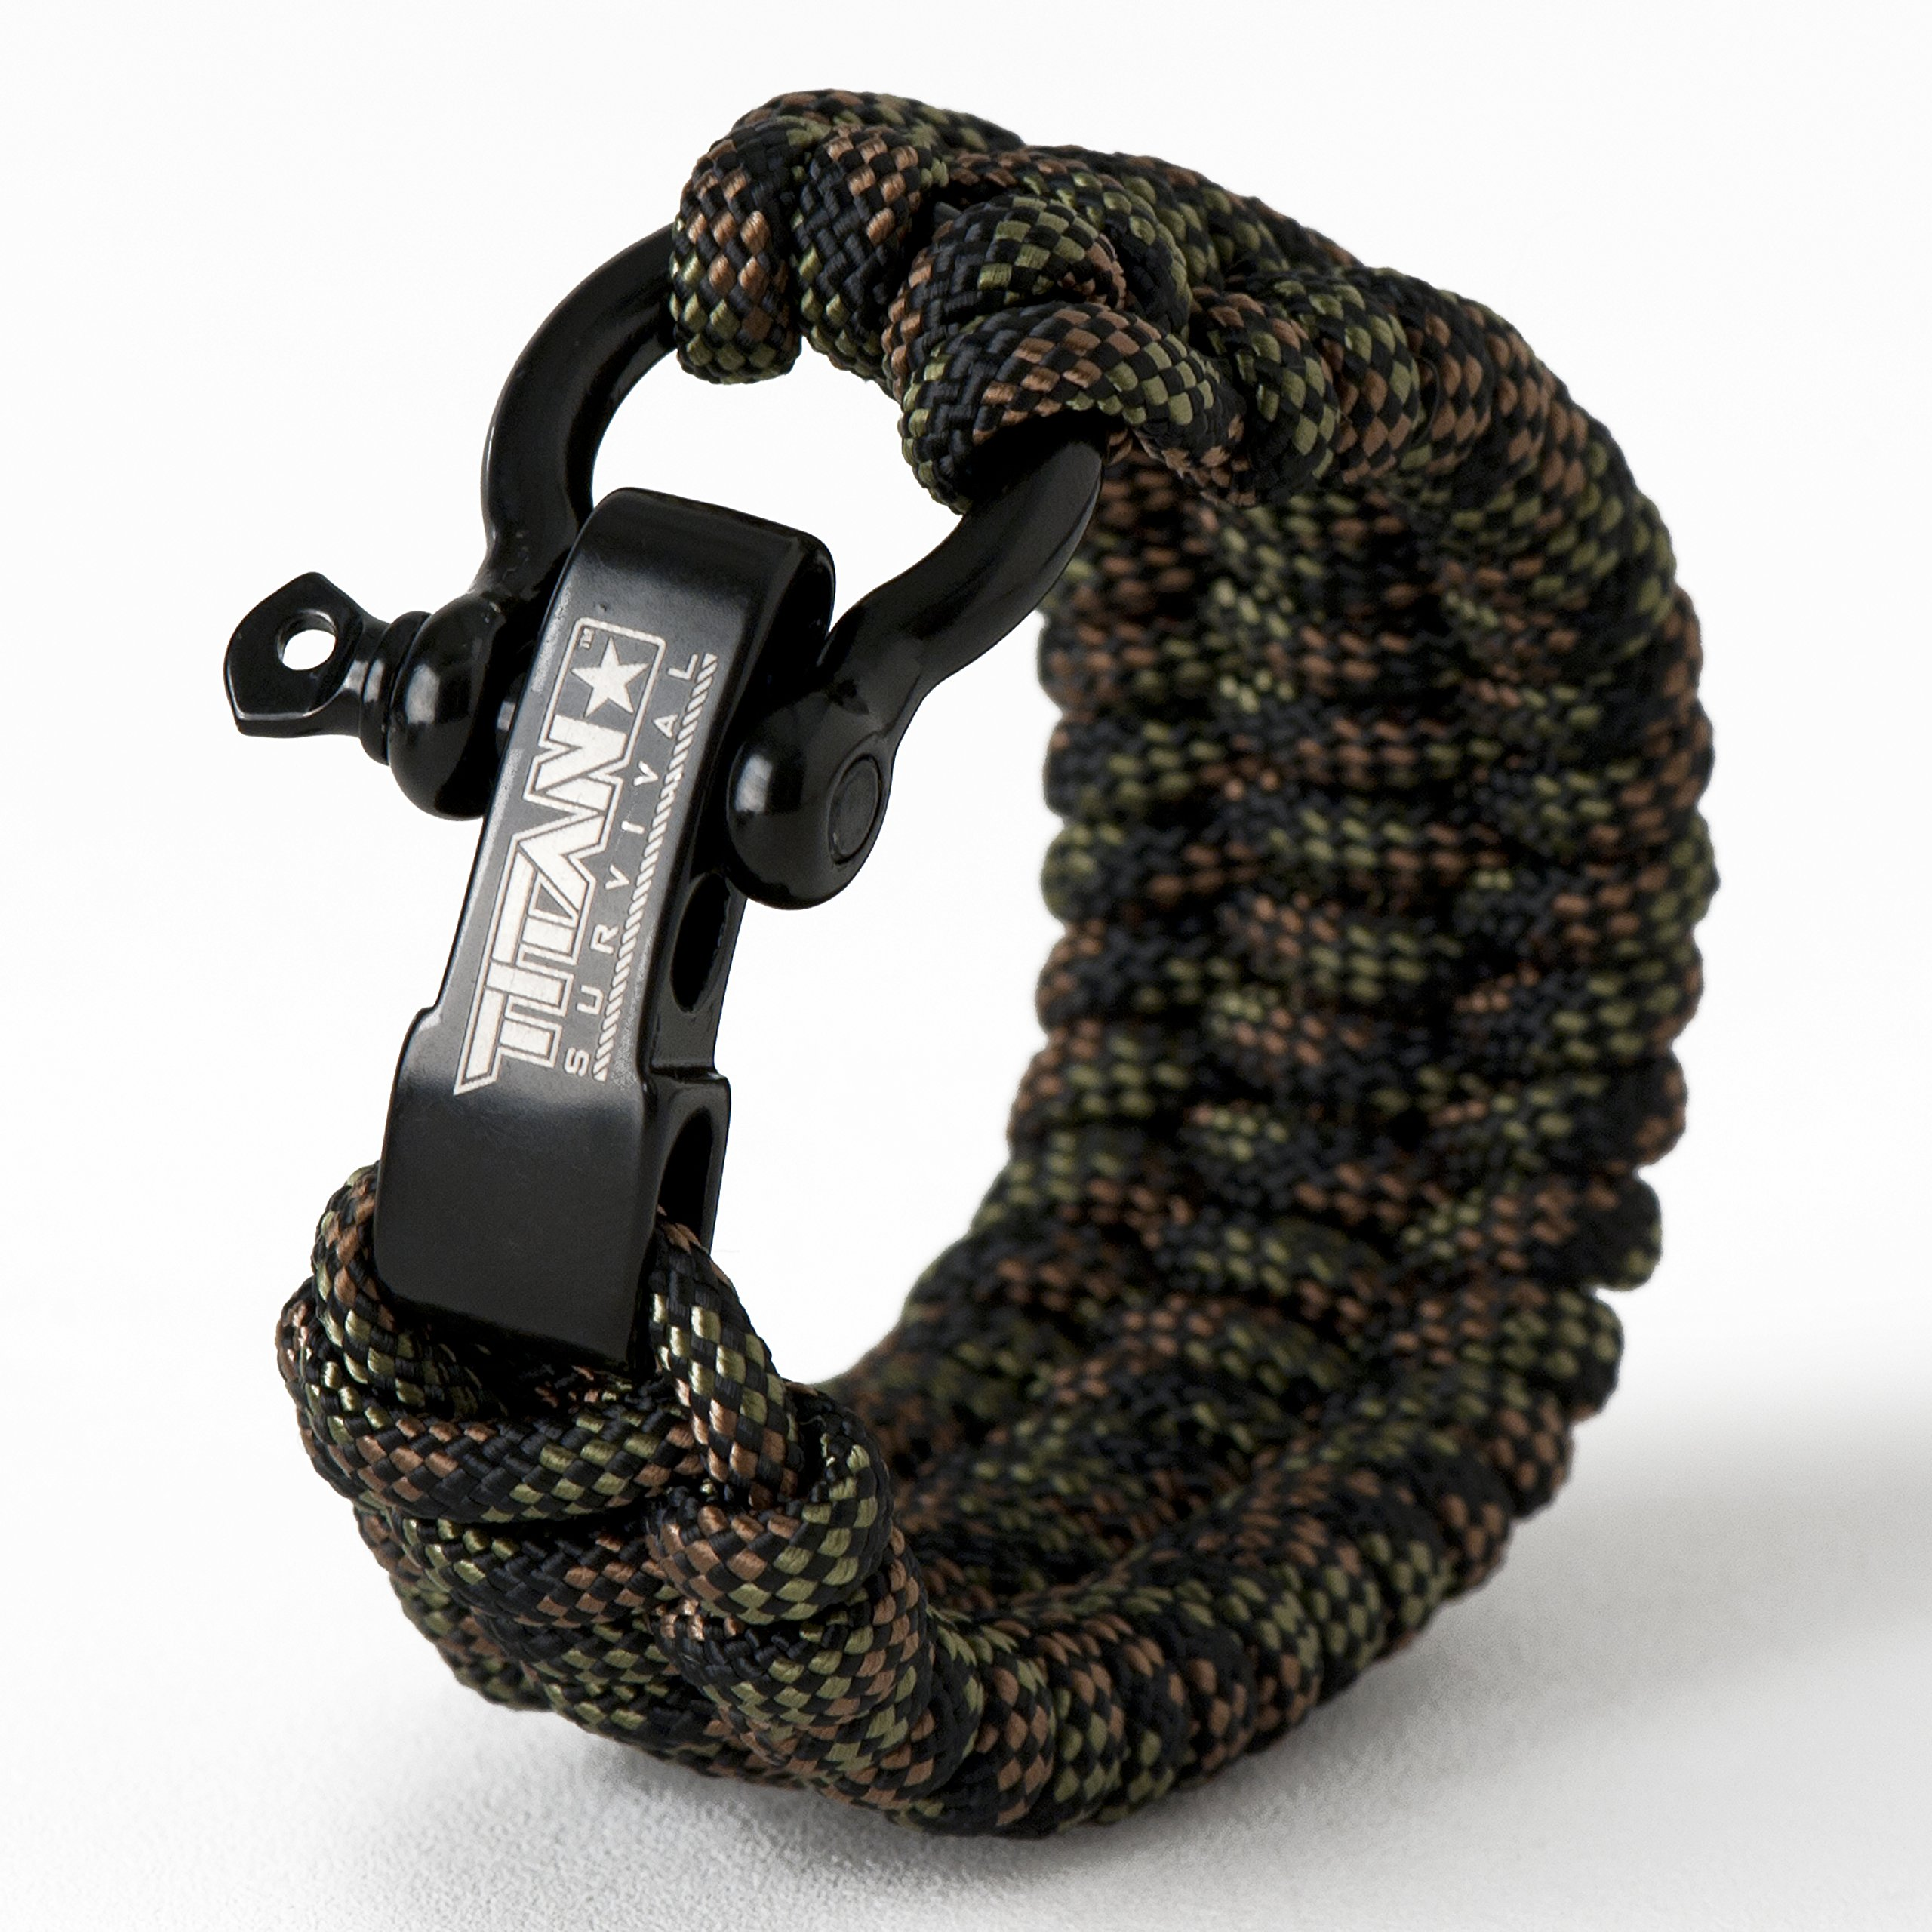 Titan Paracord Survival Bracelet | DRAGONSCALE | Large (Fits 8'' - 9'' Wrist) | Made with Authentic Patented SurvivorCord (550 Paracord, Fishing line, Snare Wire, and Waxed Jute for Fires). by Titan Paracord